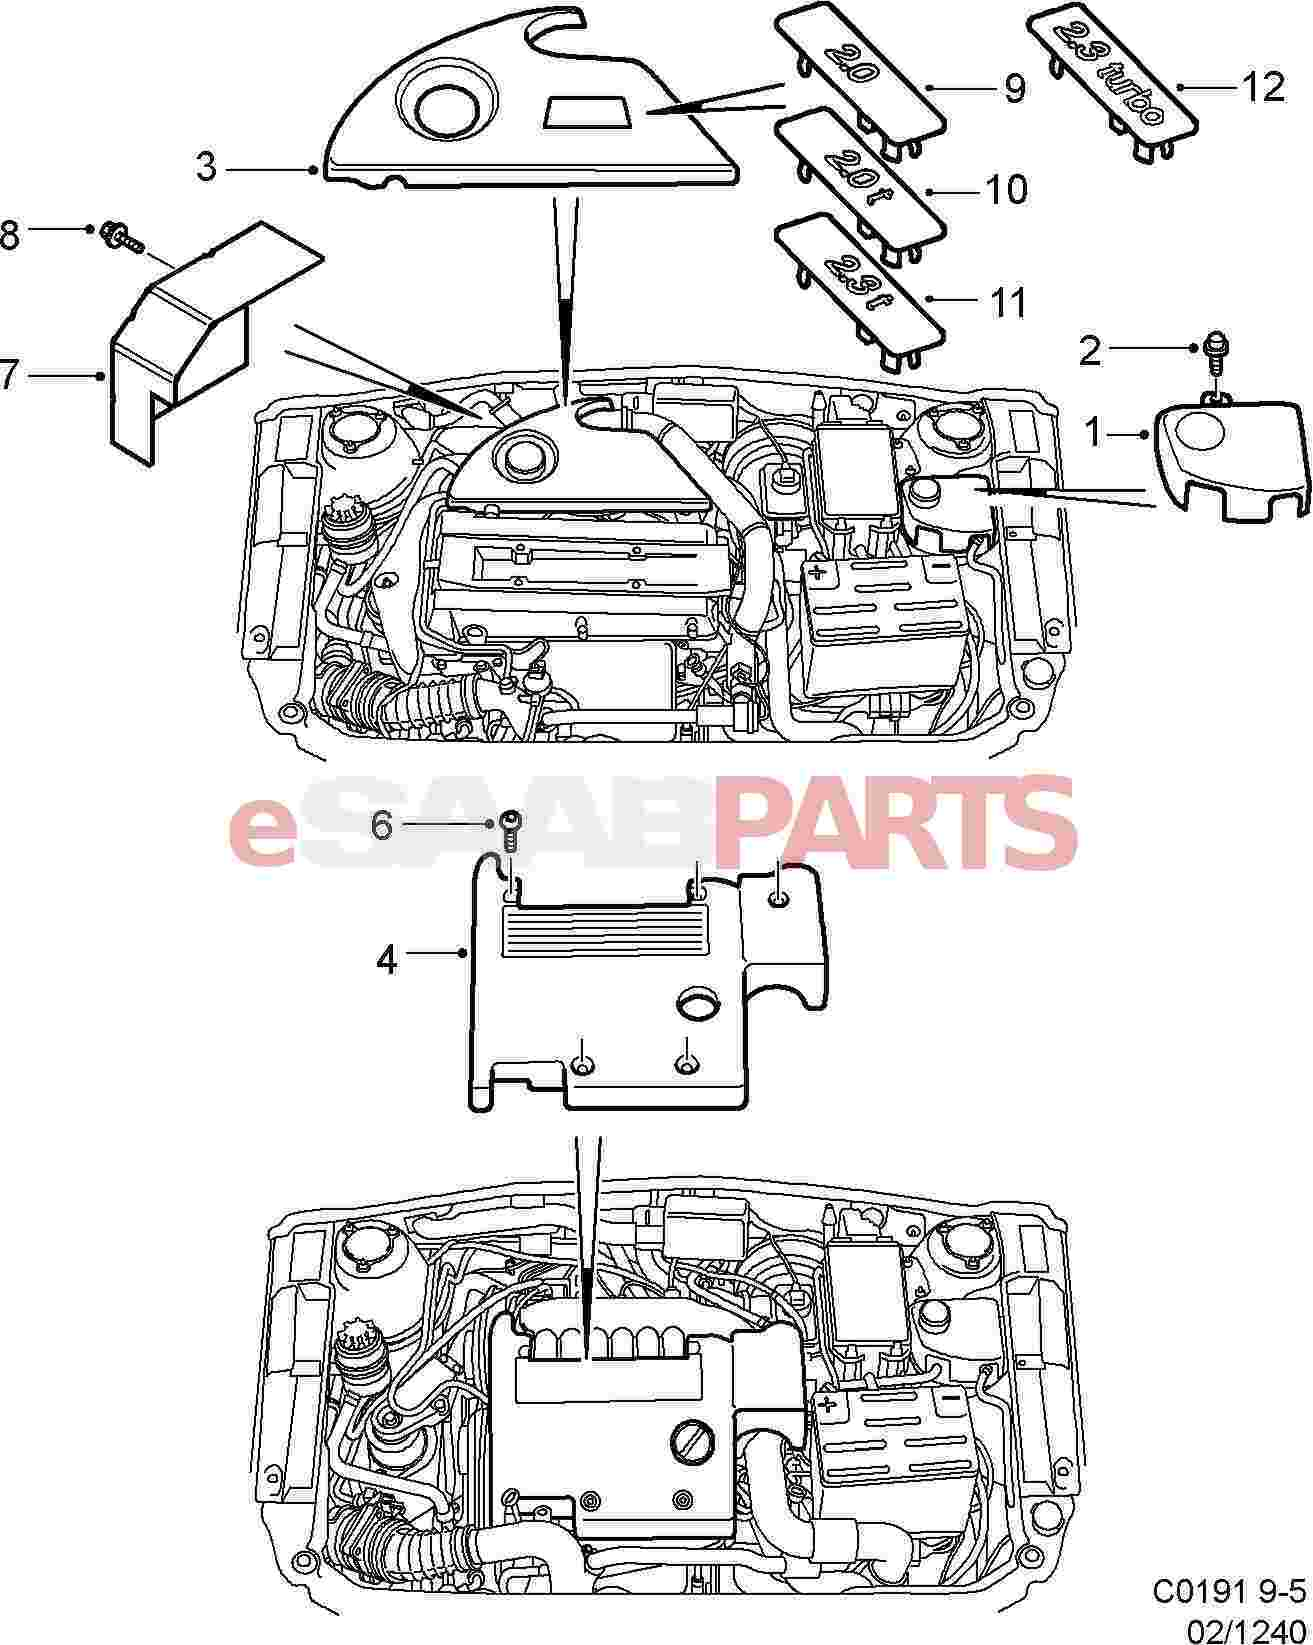 96 honda accord engine diagram hydrogen atom clip art saab mounts wiring